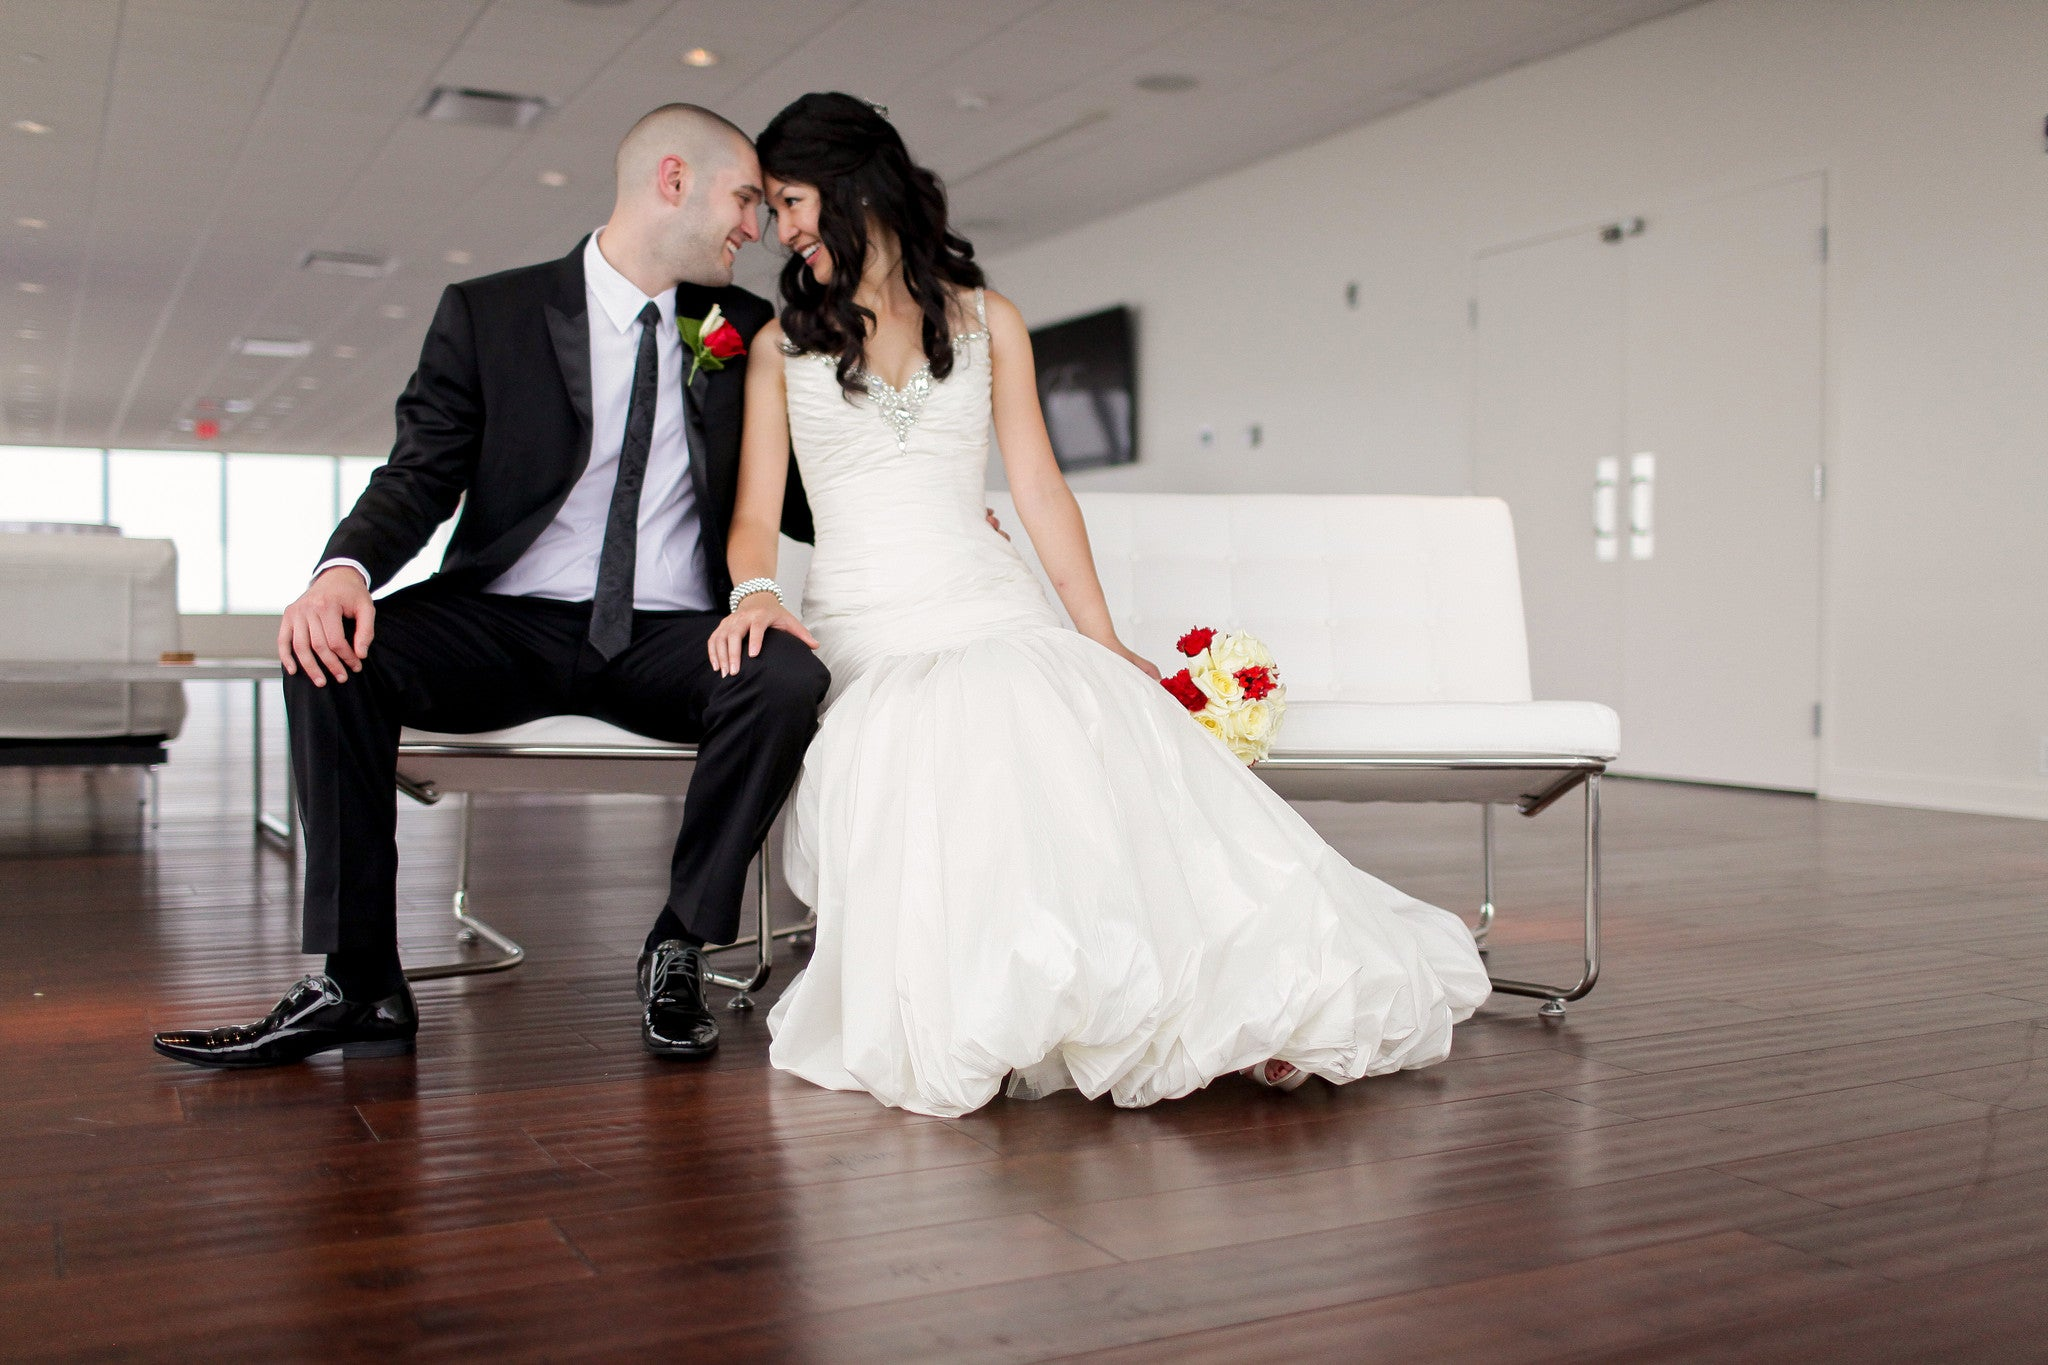 Wedding Photography Guide To Posing: Indoor Wedding & Engagement Photography Posing Guide